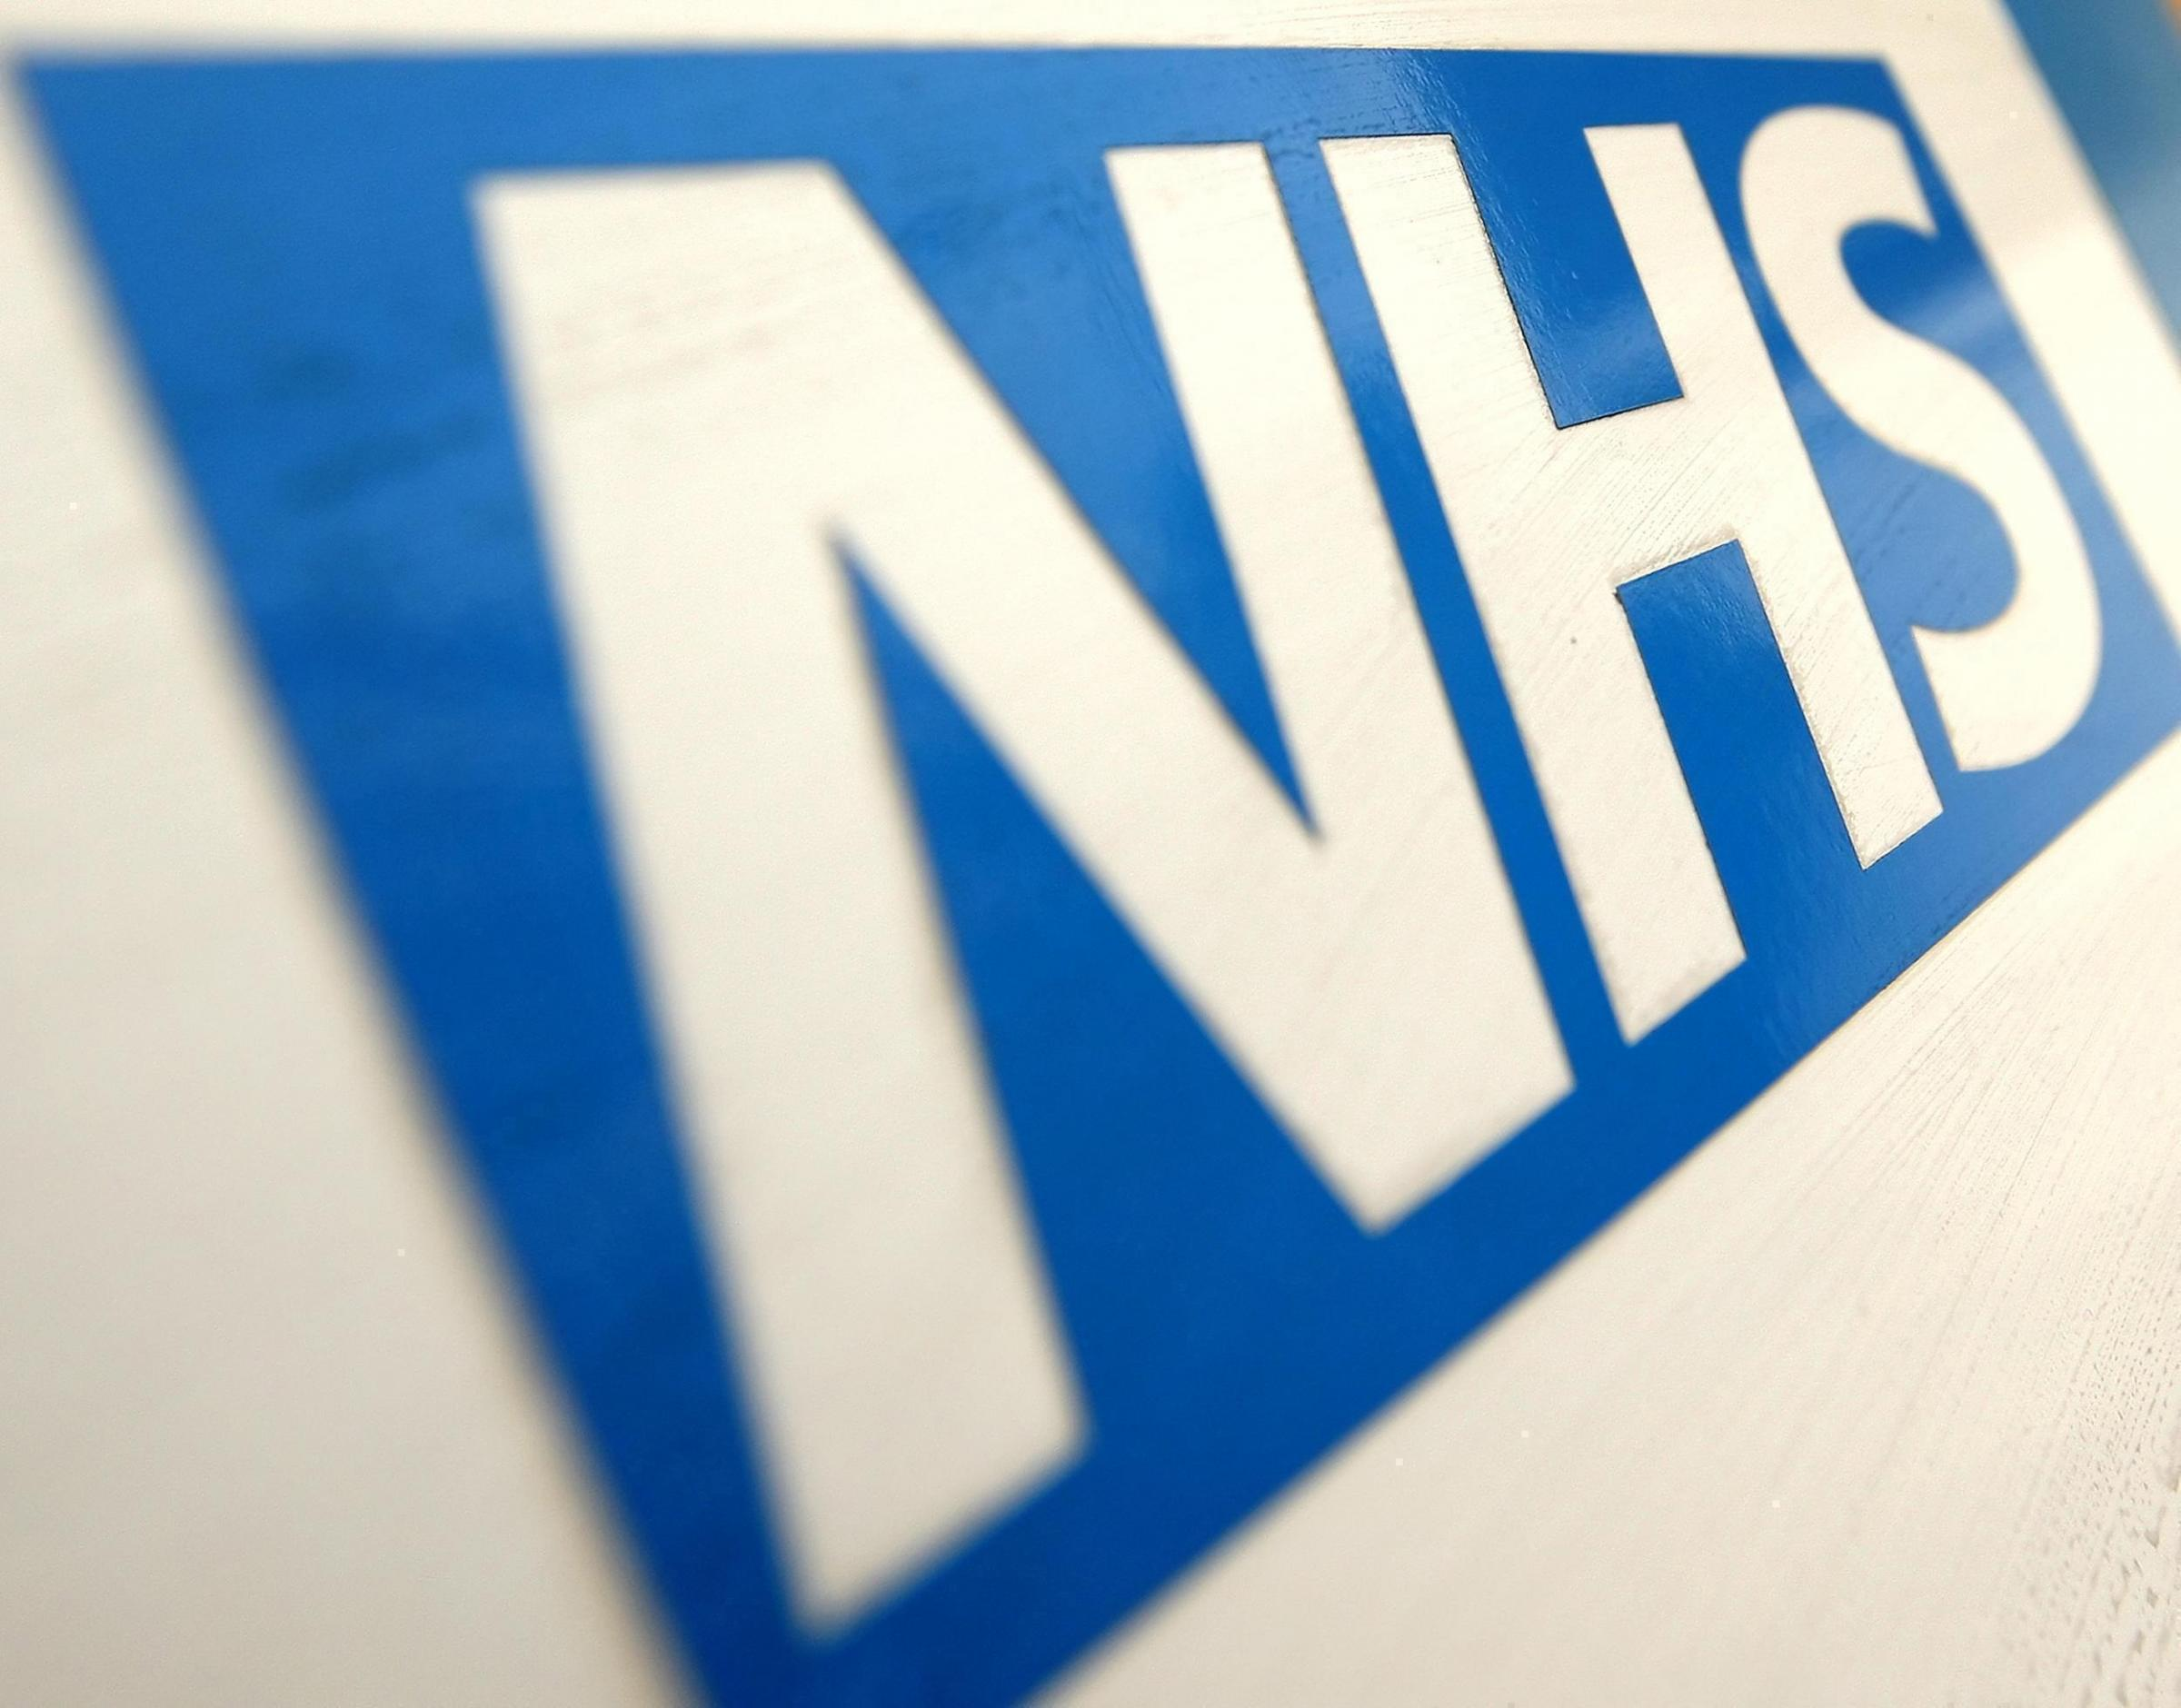 Bury NHS in cash crisis as it faces £60 million shortfall